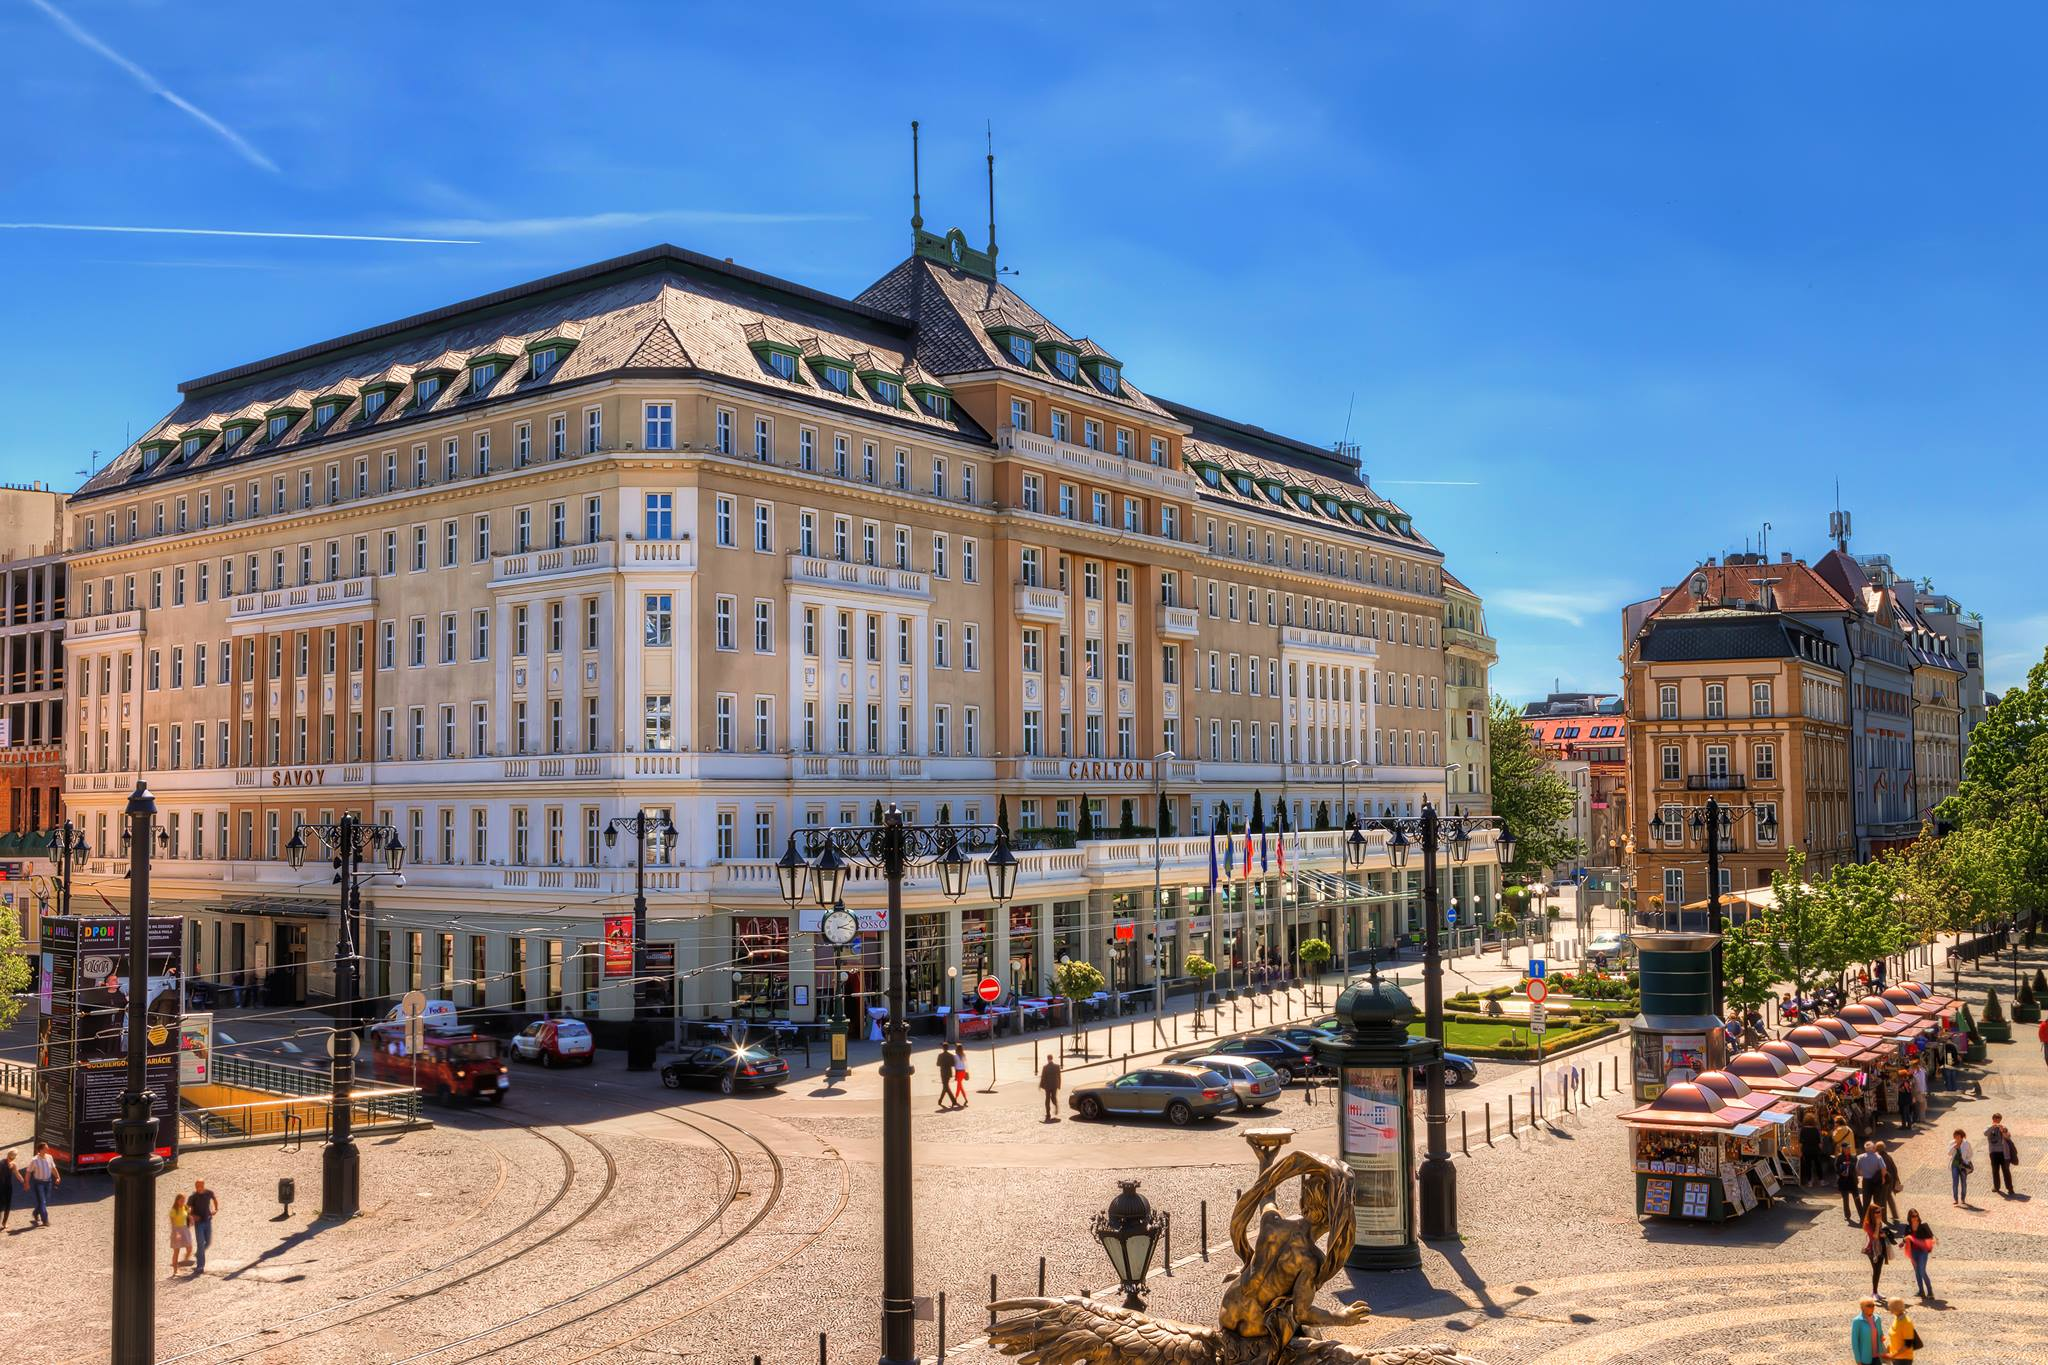 Raddisson Carlton Hotel at the iconic Hviezdoslav's Square